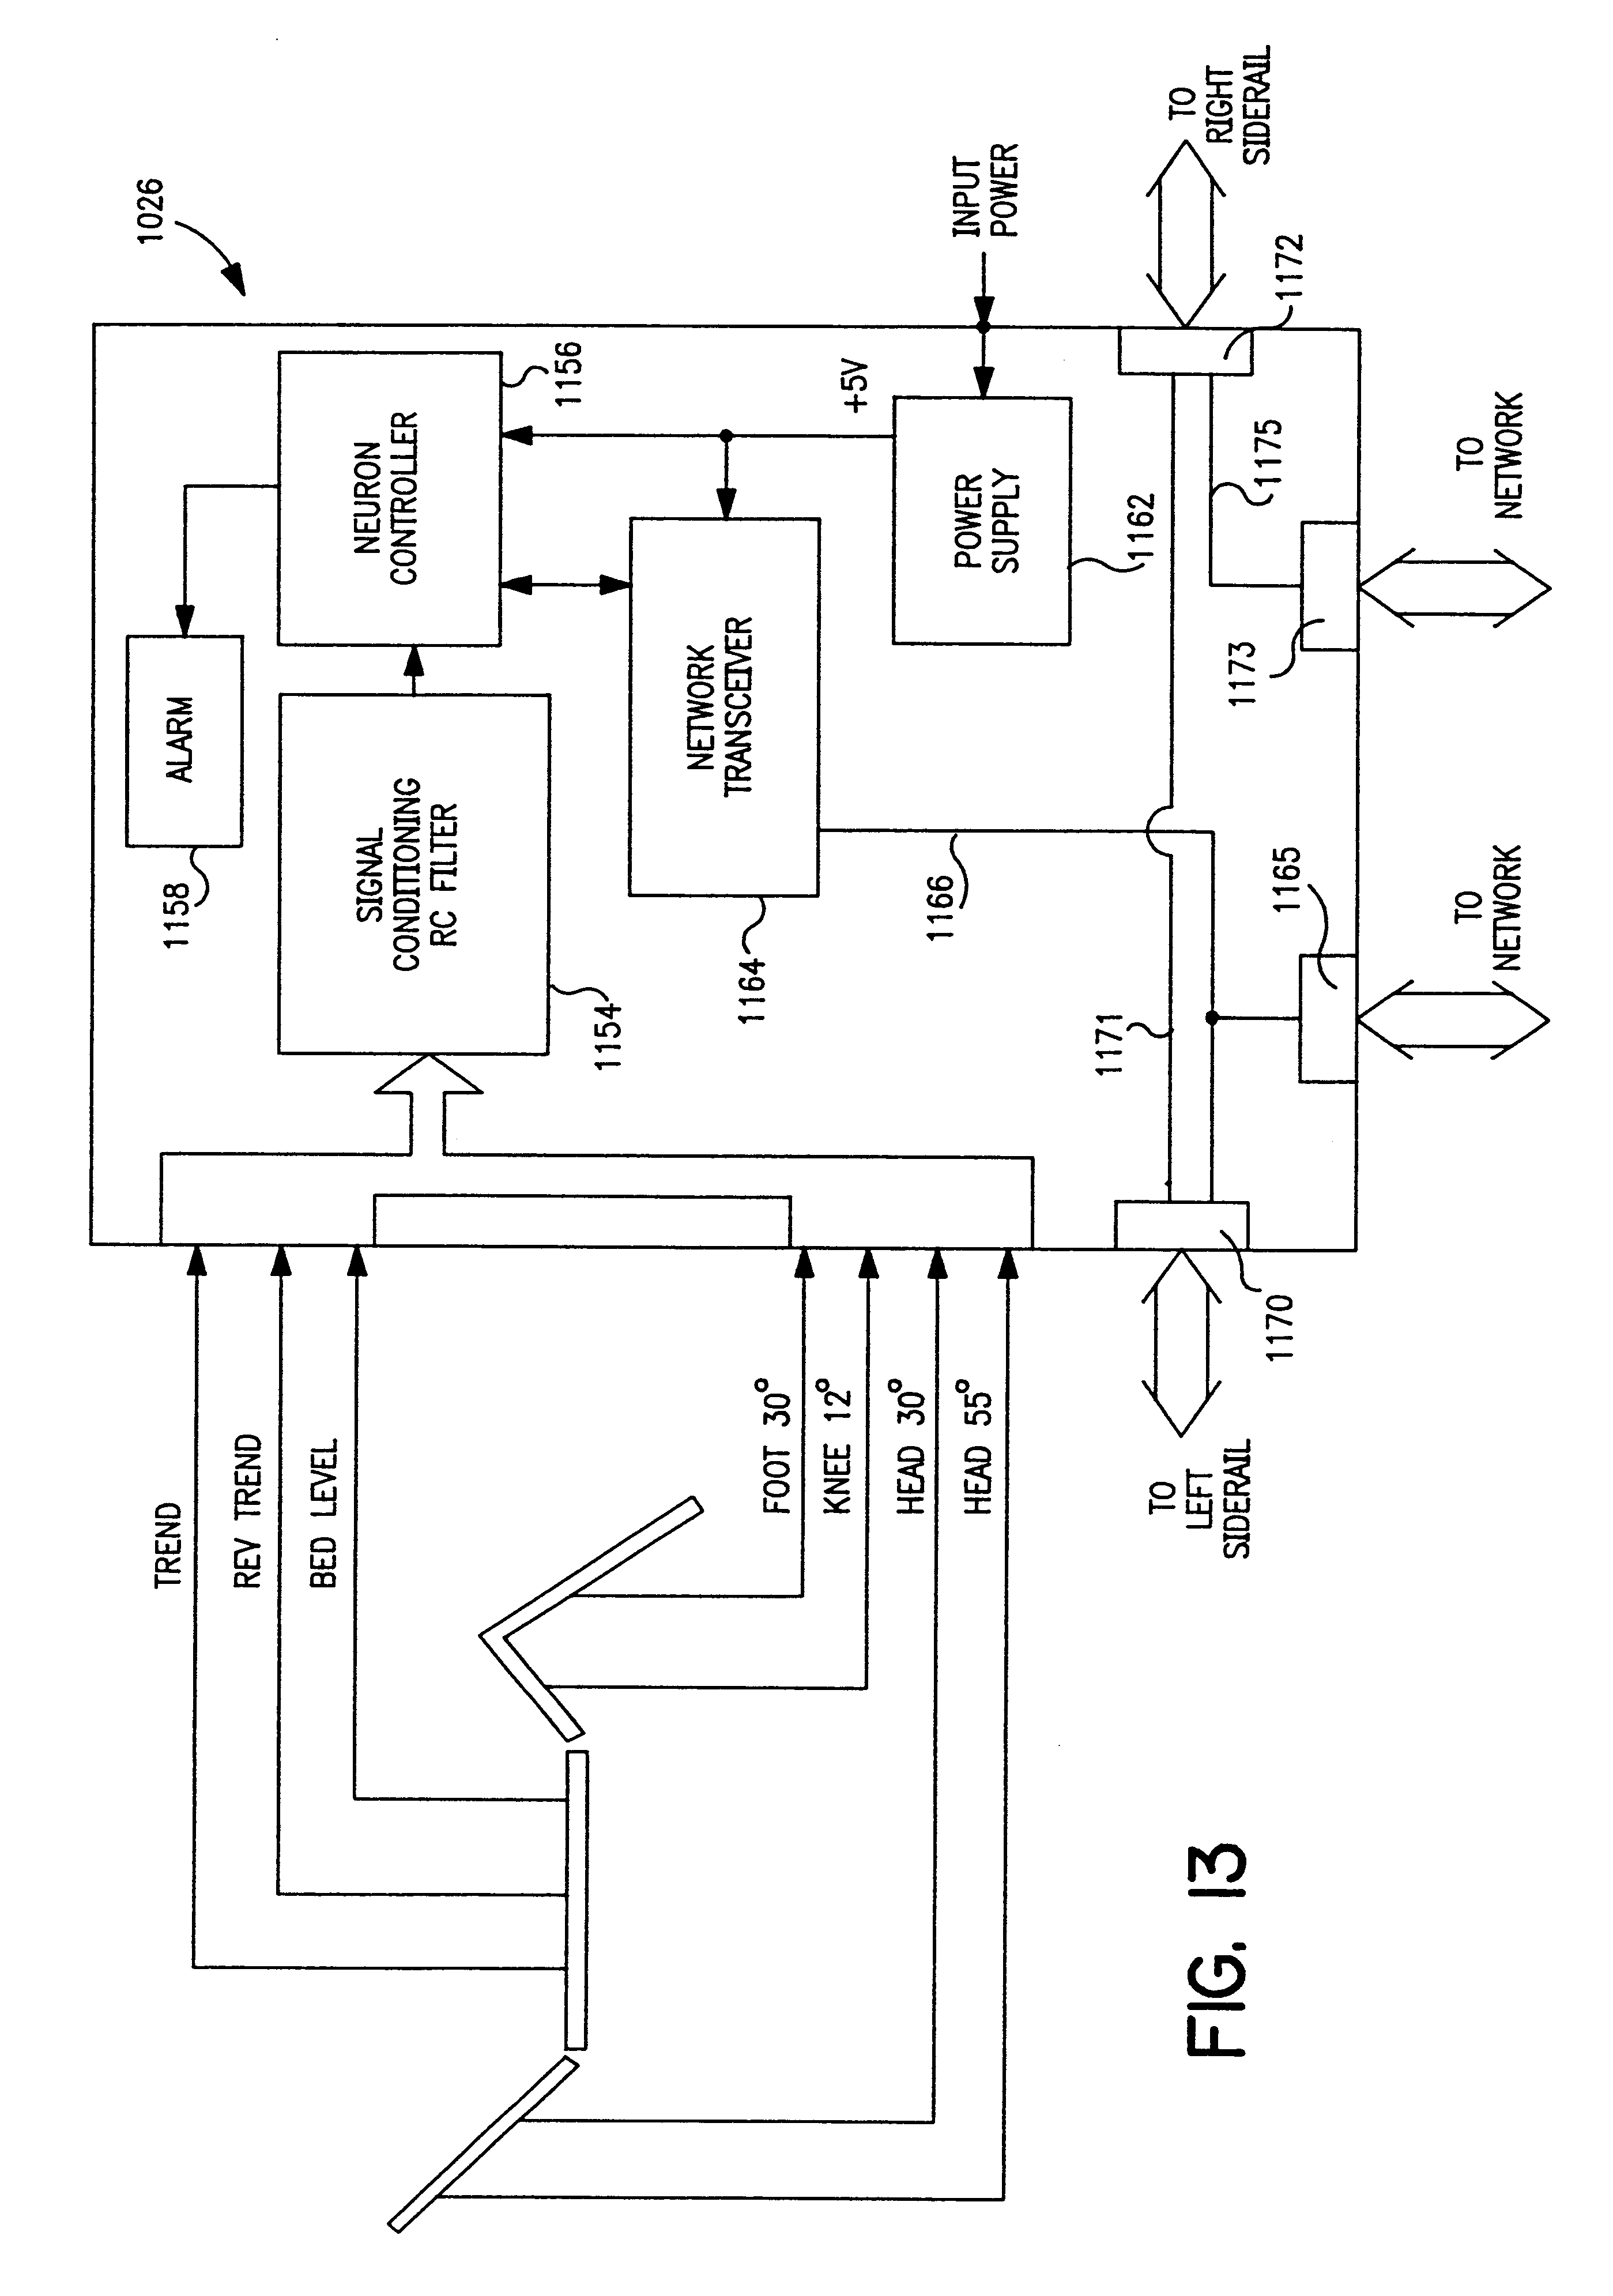 Patent Us6279183 Communication Network For A Hospital Bed Google Remote Control Wiring Diagrams Drawing